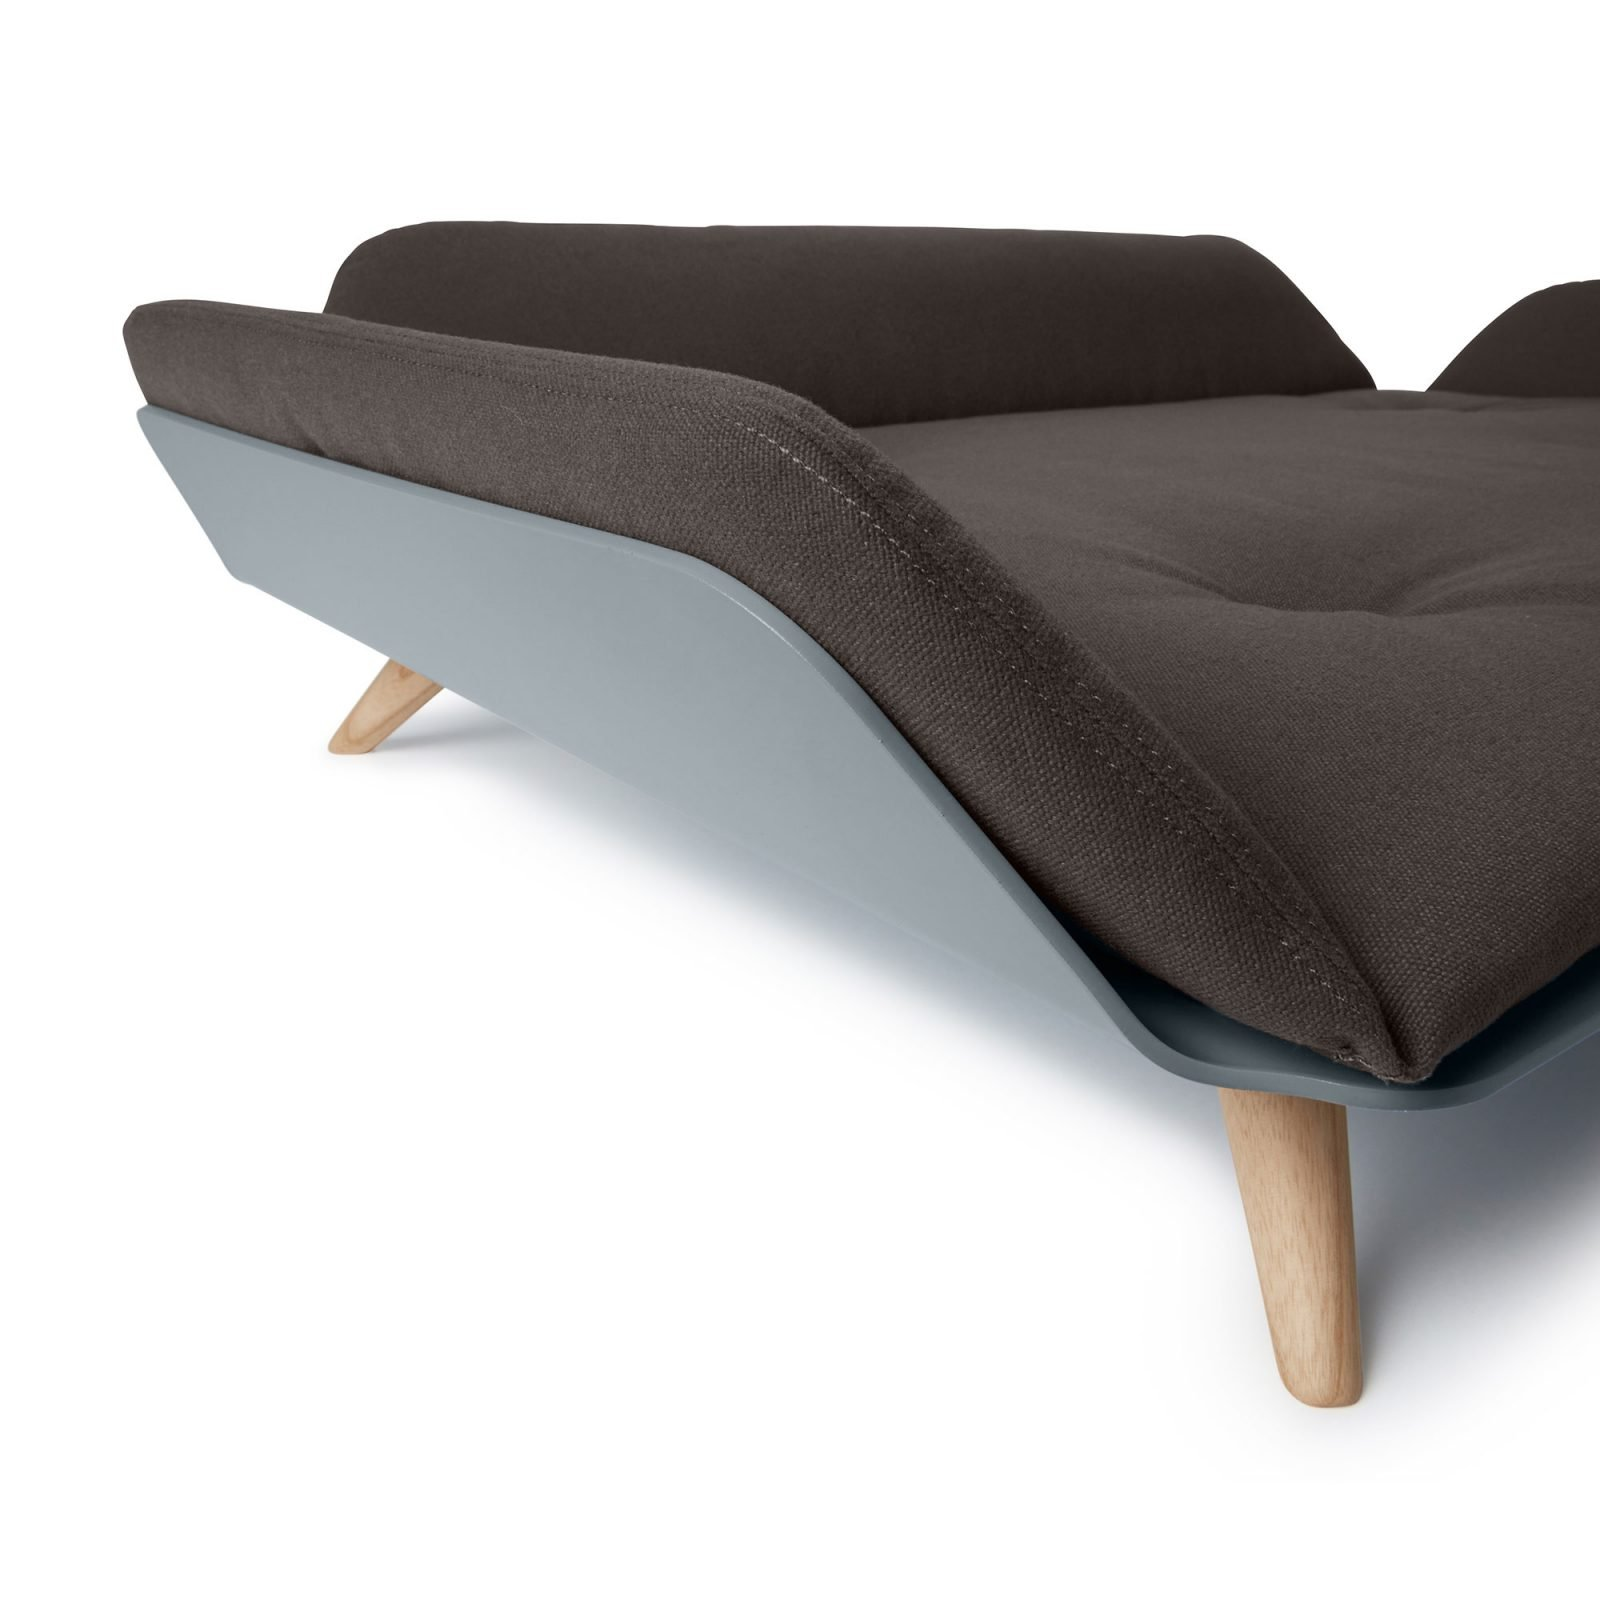 miacara-dog-bed-daybed-5